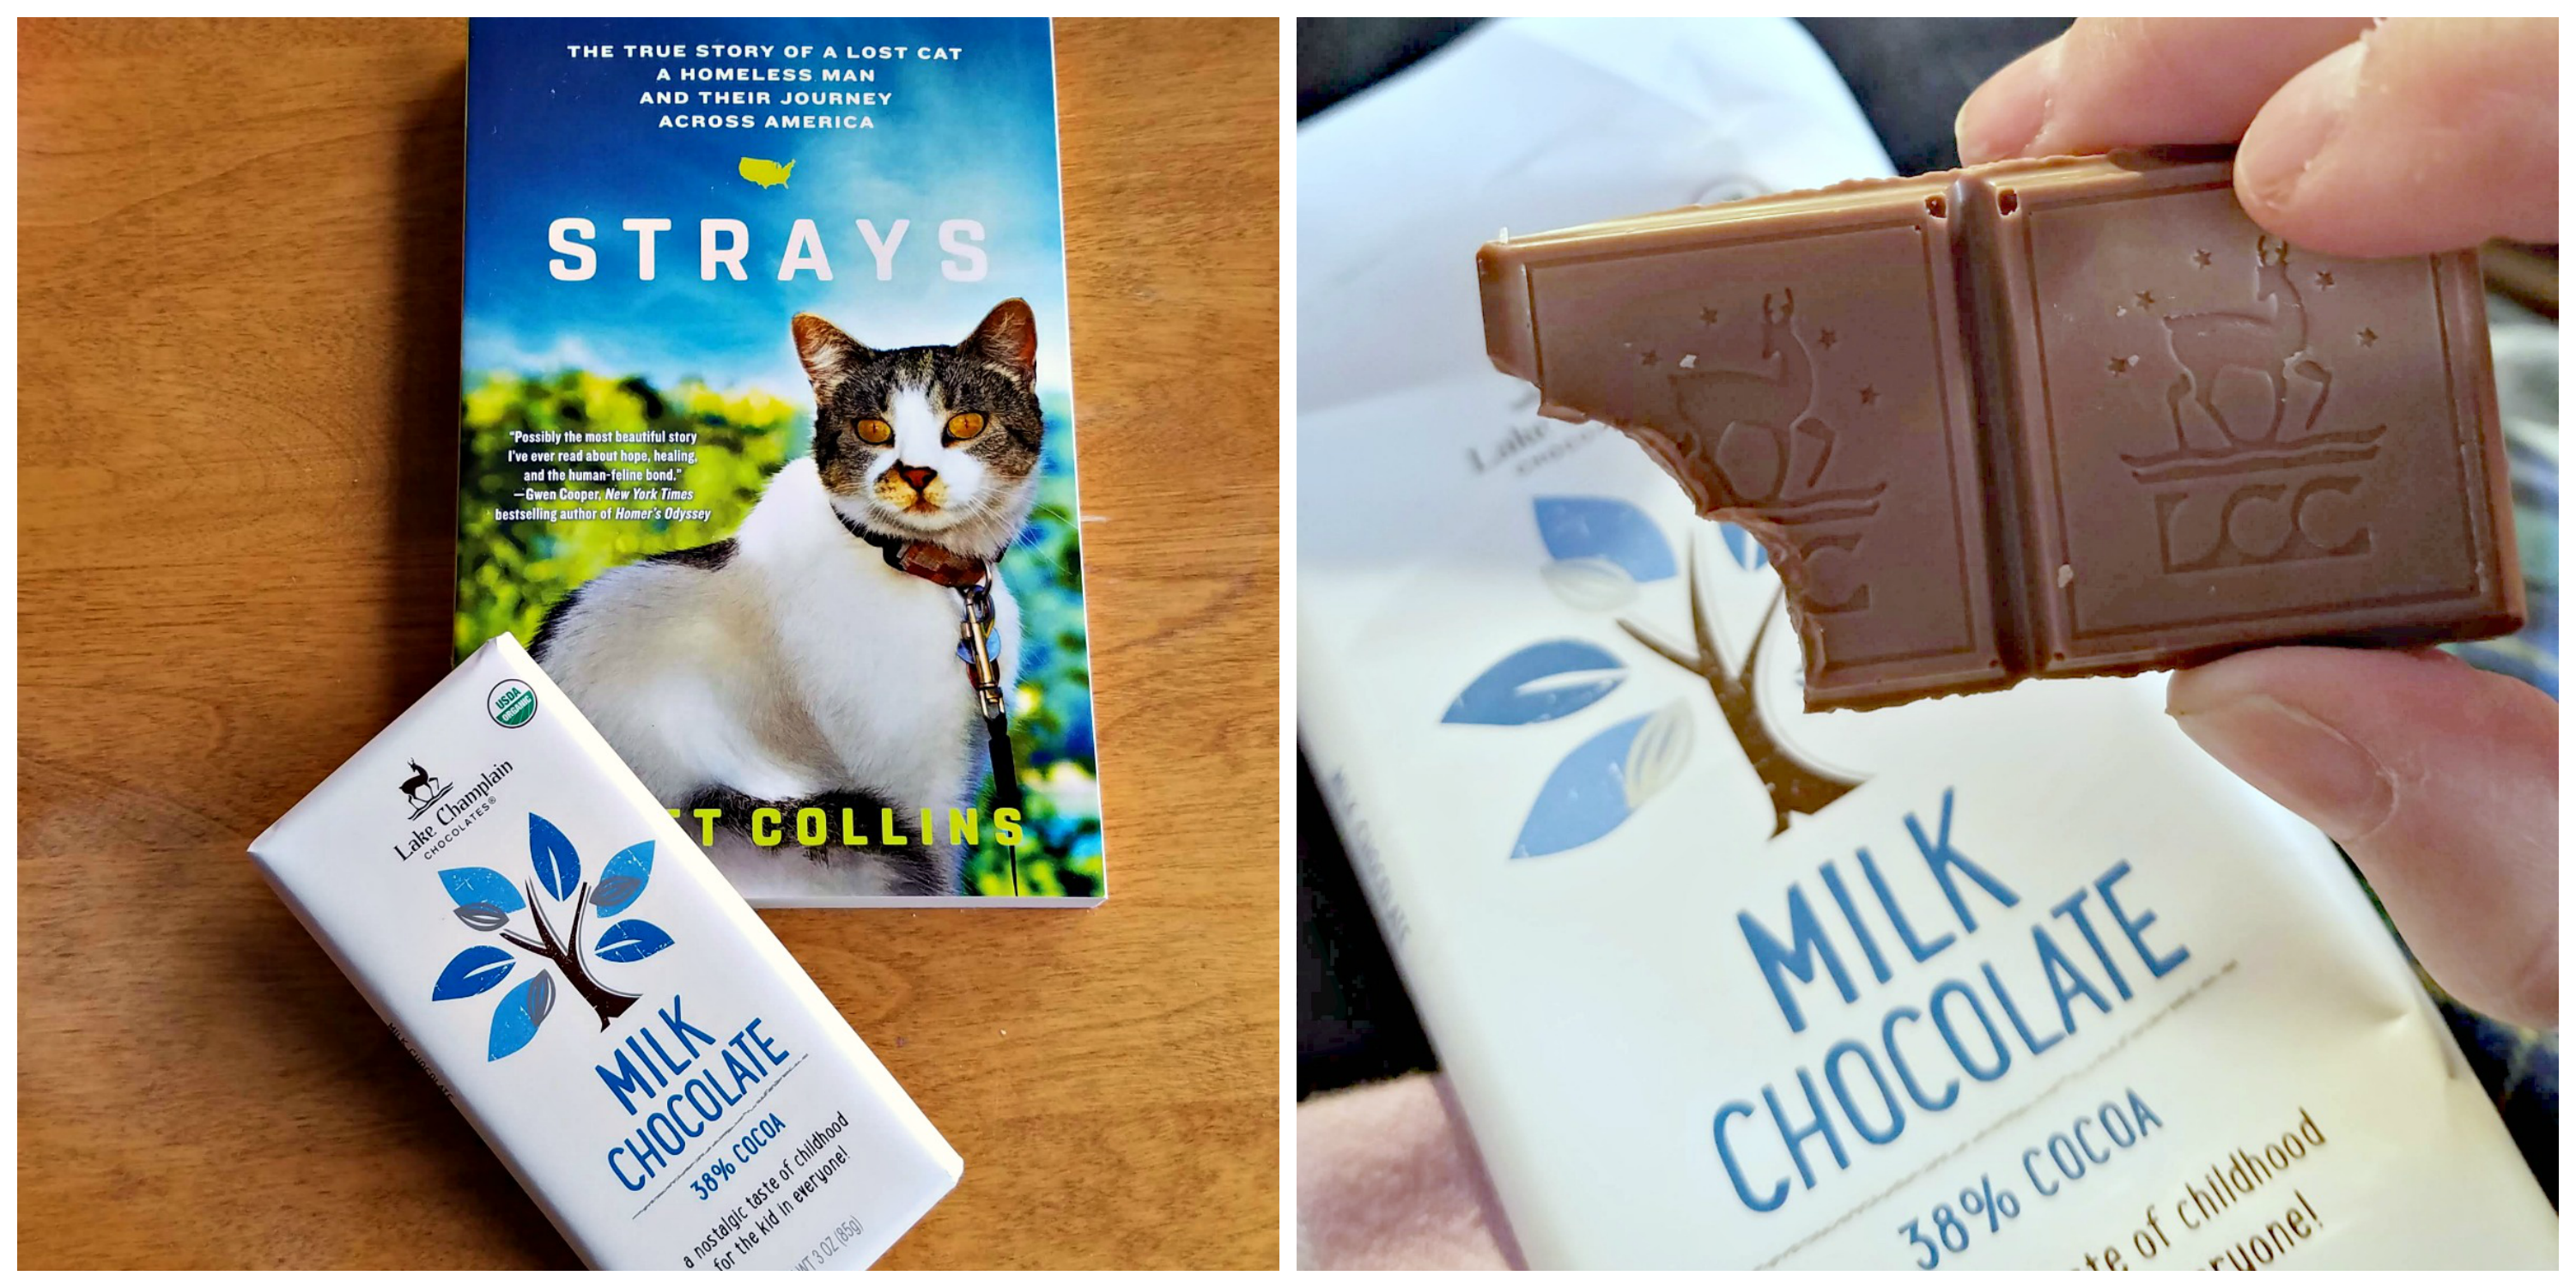 Christmas Gifts for cats, the Farm cats. Secret Cats. cat bloggers